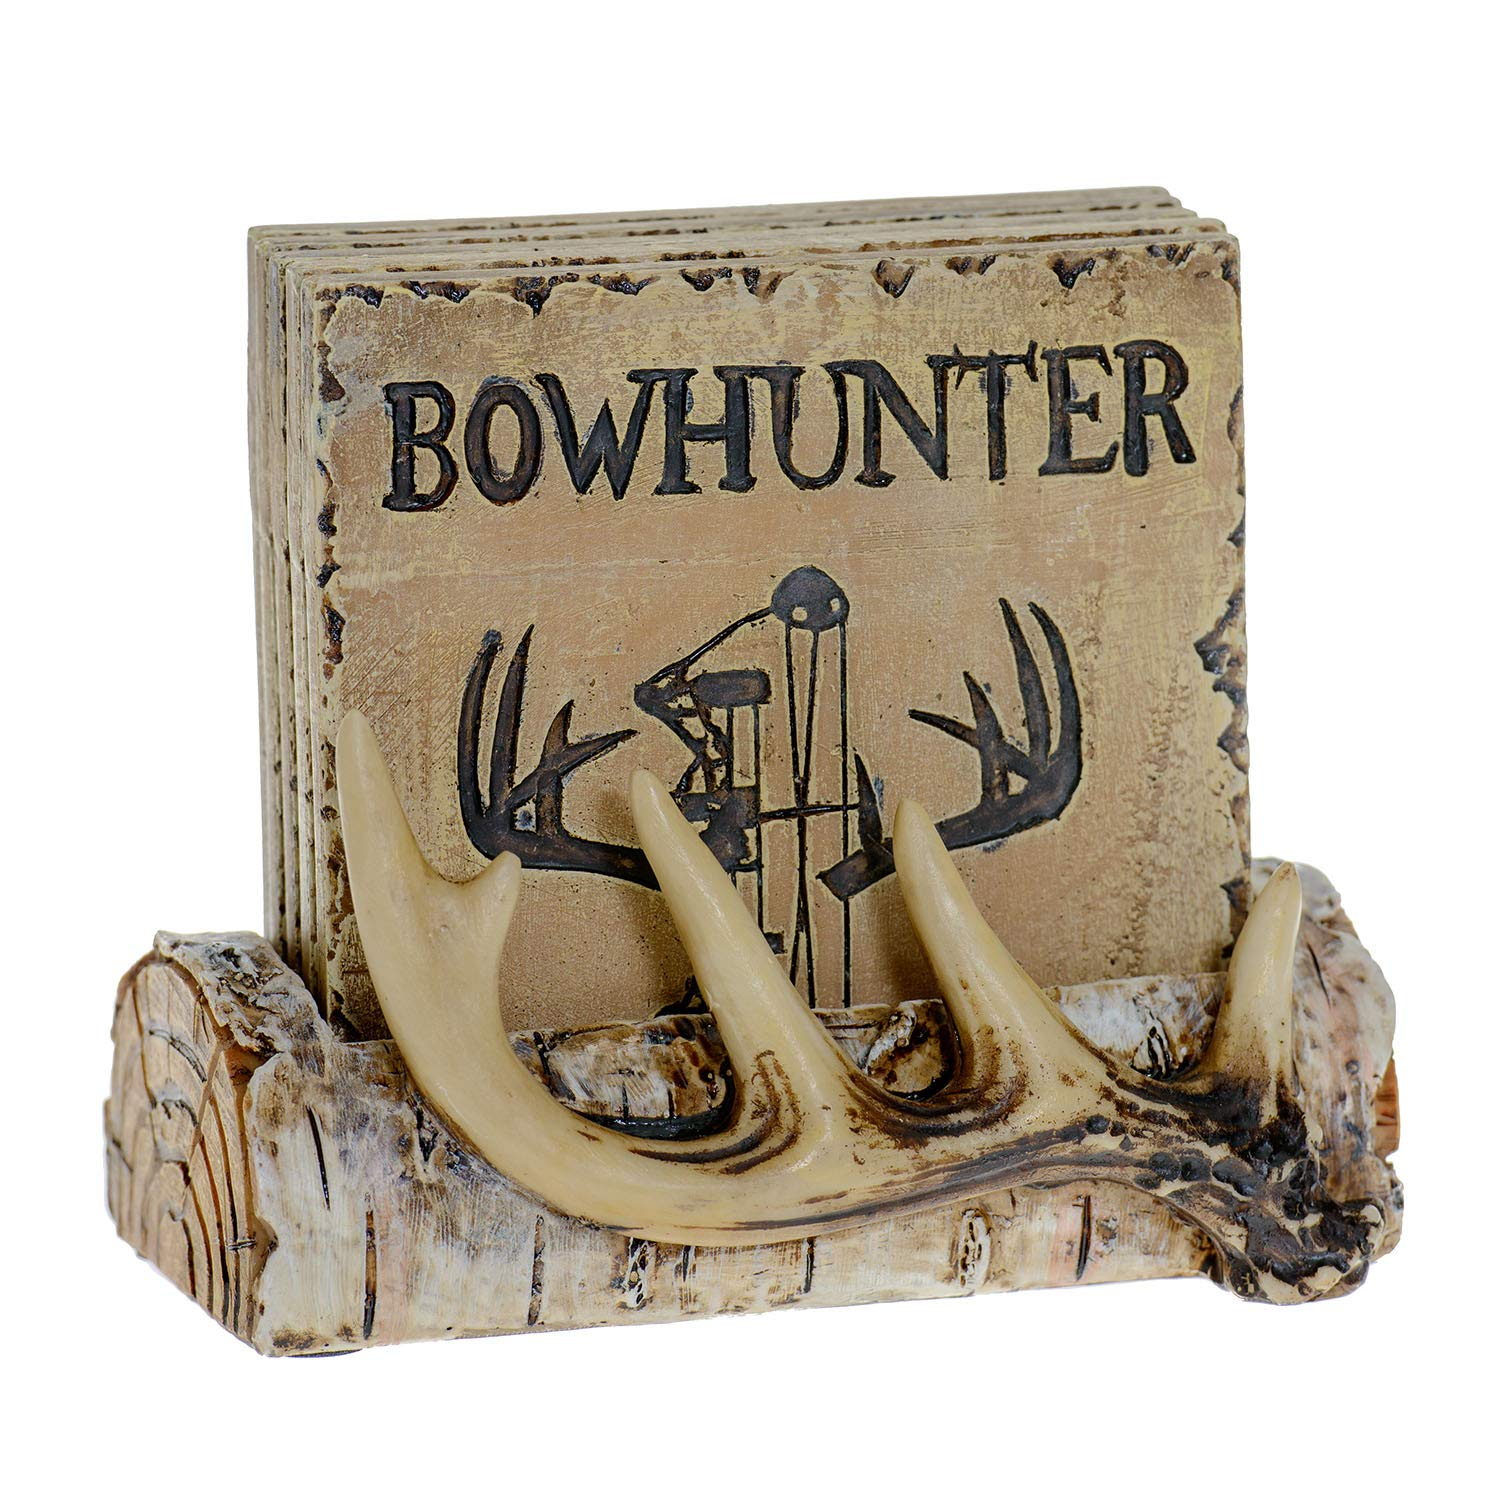 Pine Ridge Home Antler Wood Log Coaster Set with Holder - Bow Hunter Country Absorbent Coaster Decor - Cabin Lodge Home Decor for Hunter Men - Man Cave Coasters Rustic Wood Home Decor Accent